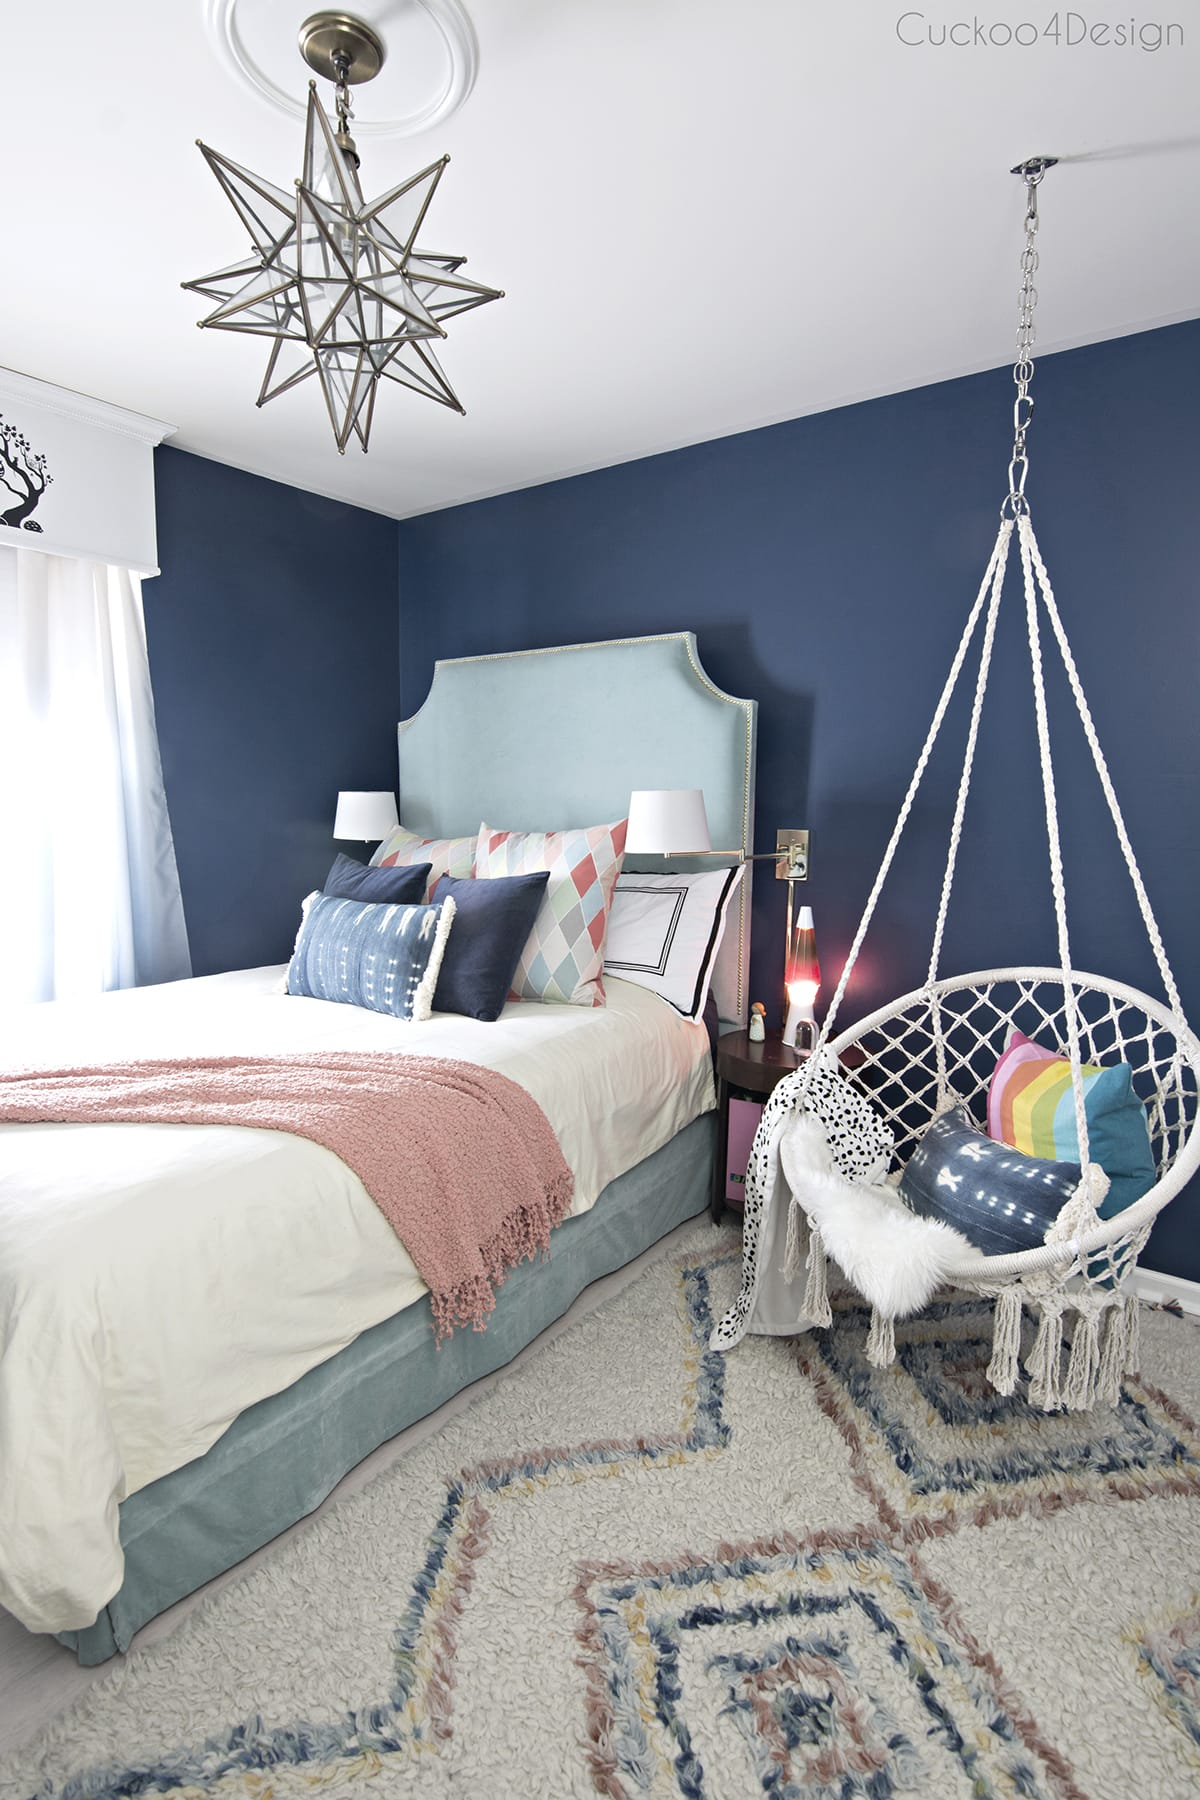 dark blue girls room with turquoise velvet bed, macrame hanging chair and colorful Moroccan shag rug